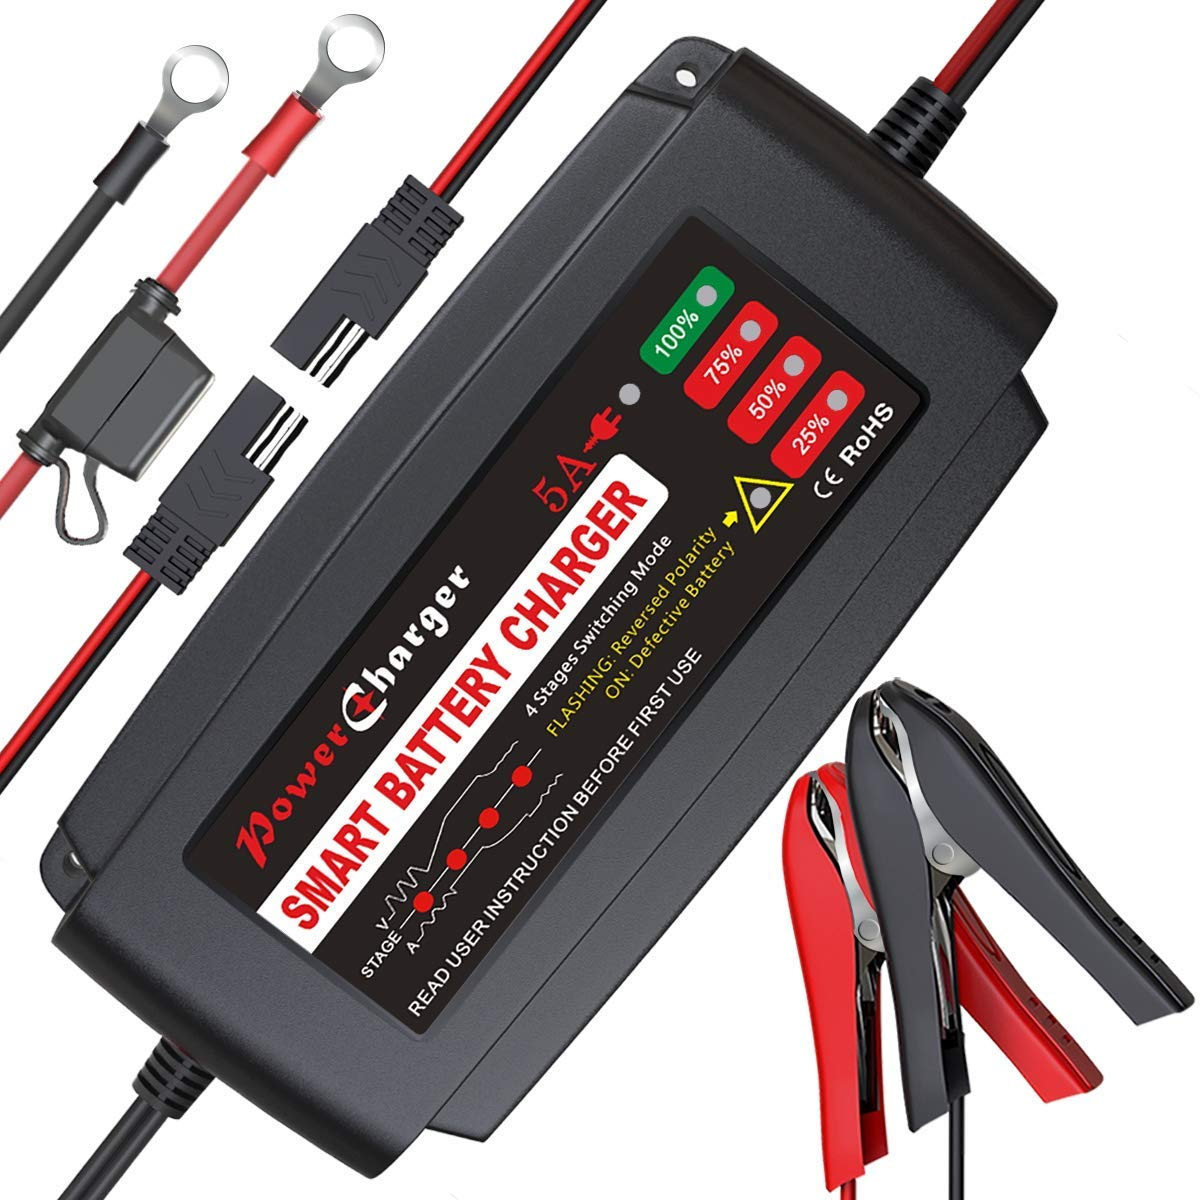 BMK battery charger